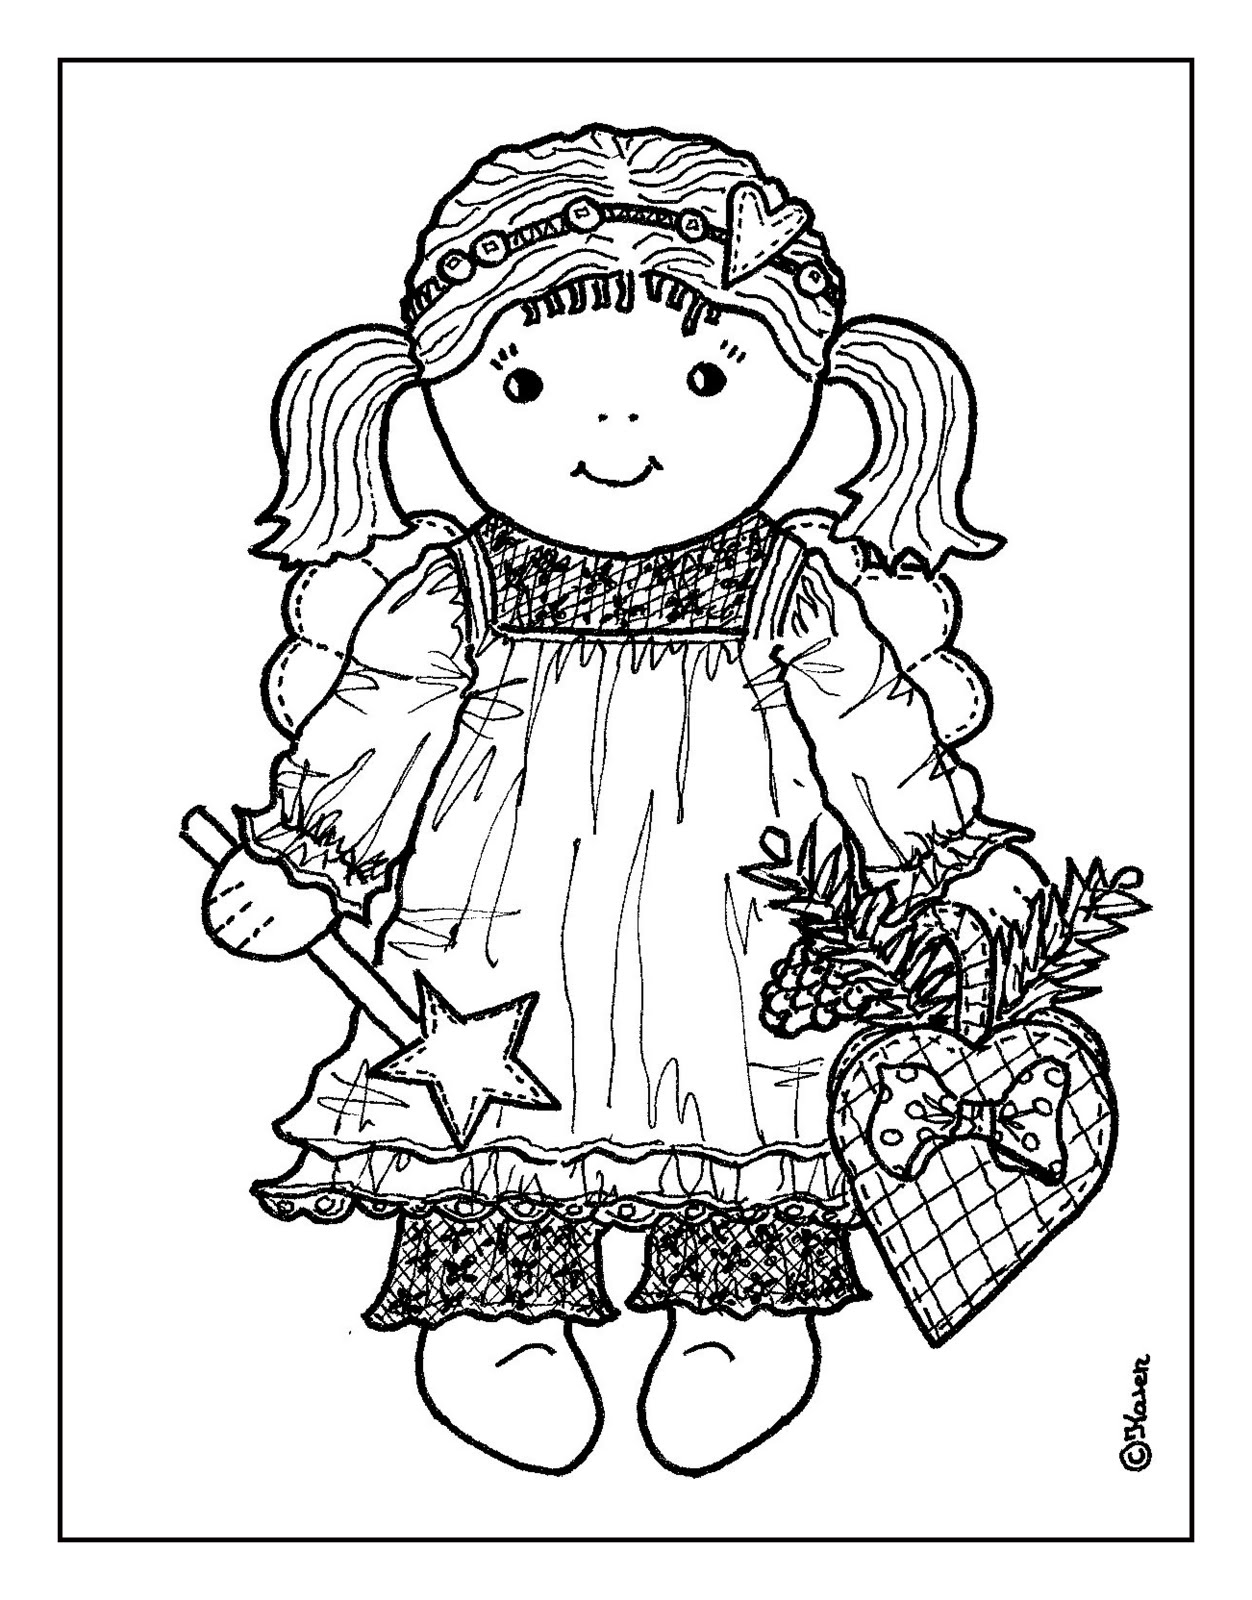 Label: Christmas Coloring Page